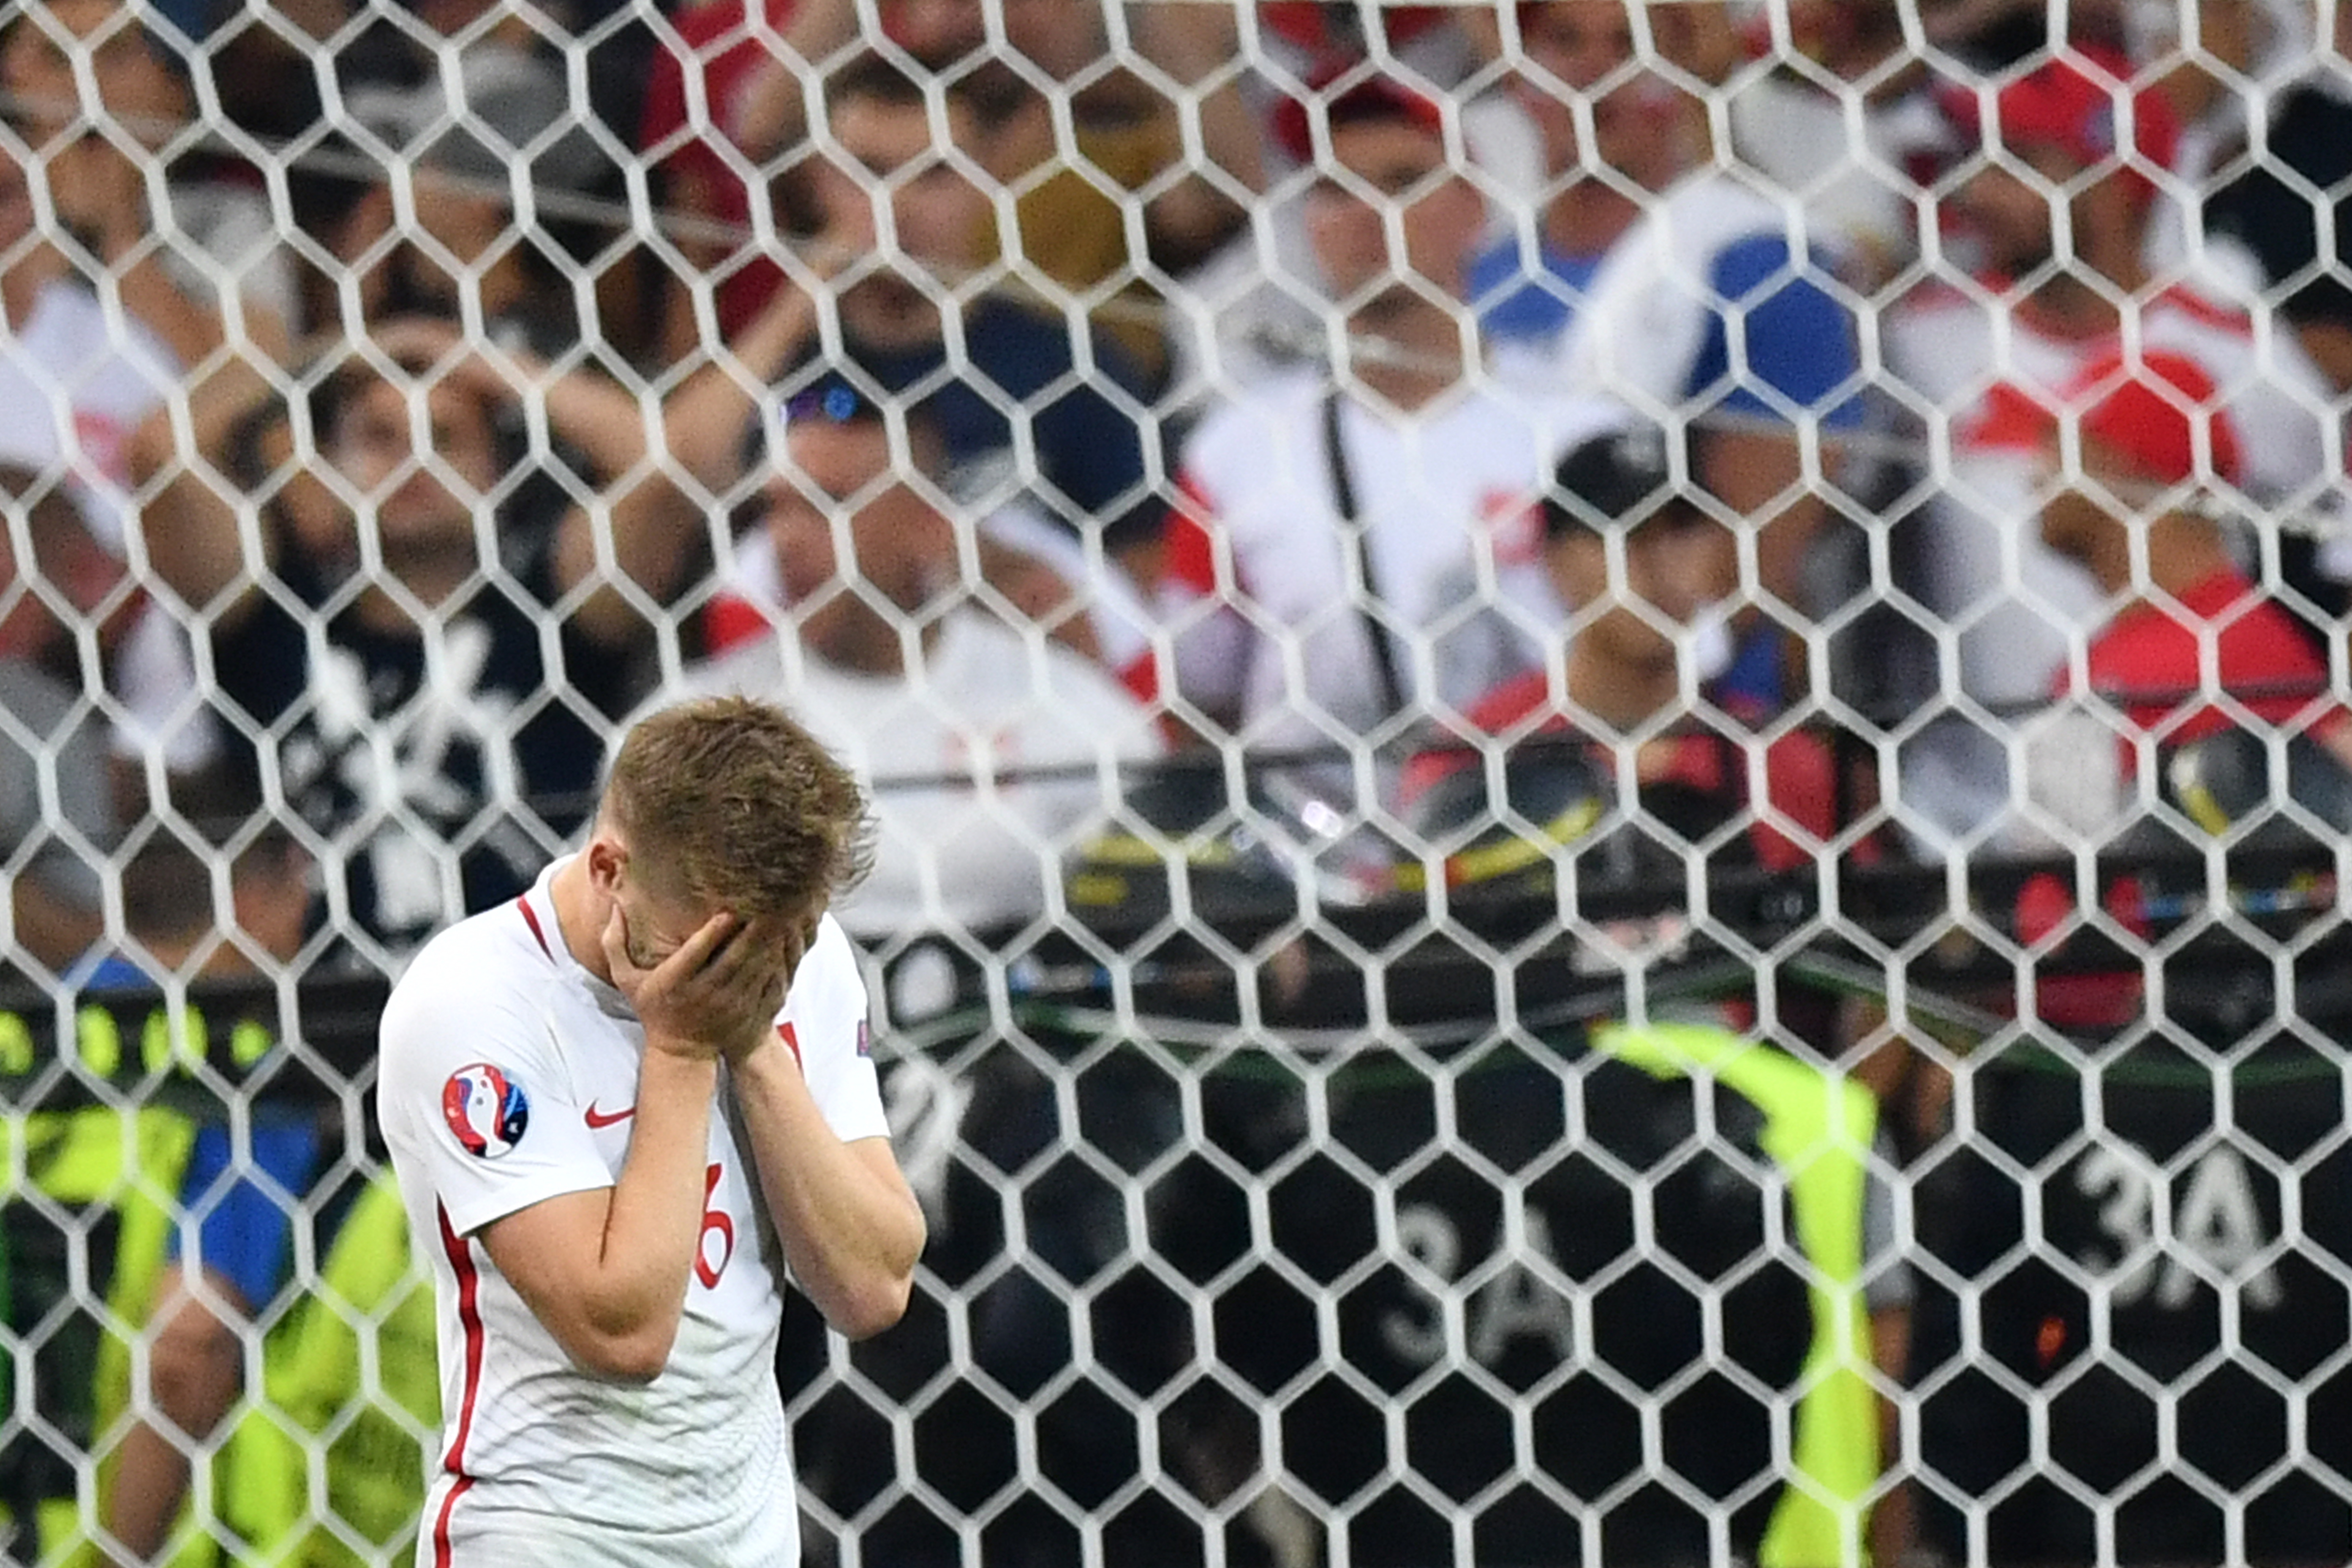 Poland's midfielder Jakub Blaszczykowski reacts after missing a shot in a penalty shoot-out during the Euro 2016 quarter-final football match between Poland and Portugal at the Stade Velodrome in Marseille on June 30, 2016. / AFP PHOTO / BERTRAND LANGLOIS